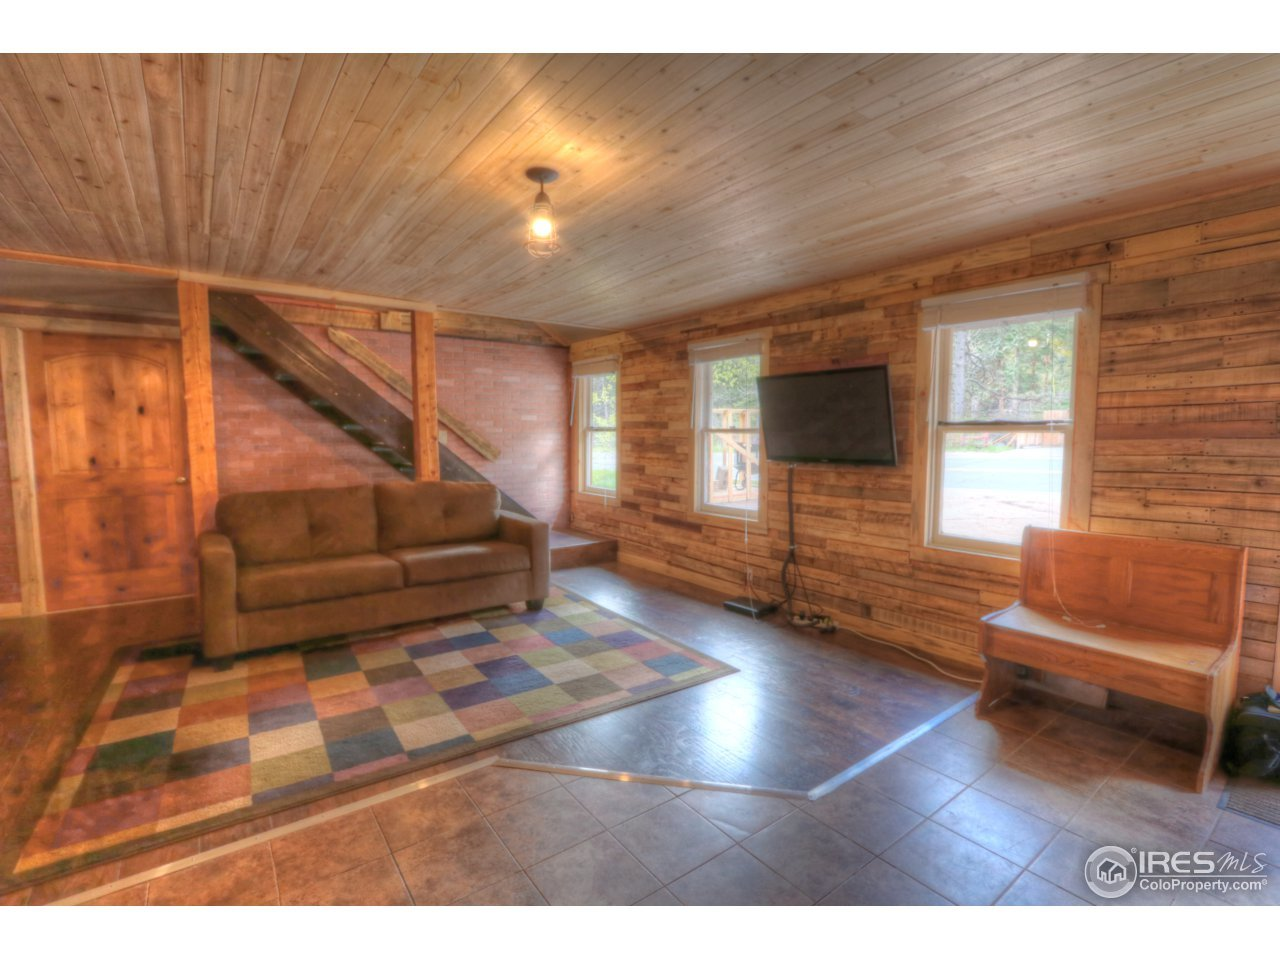 1 bed / 1 bath Home in Drake for $184,000